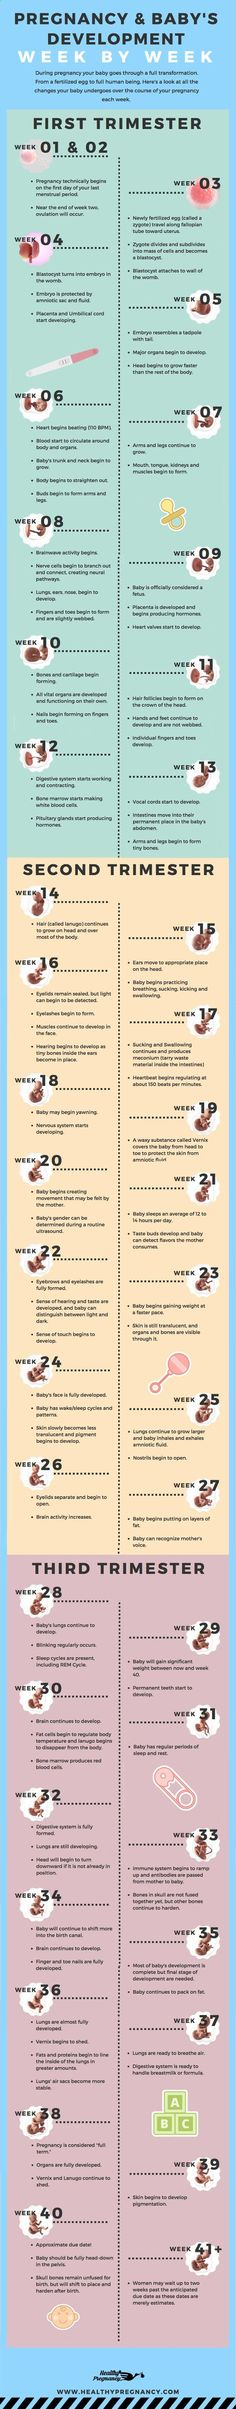 Pregnancy is a nine-month rollercoaster of changes. This guide can help you understand the changes your baby will be going through during each week of your pregnancy. Pregnant | Week by Week | Calendar | Pregnancy Calendar | Babys Development | Fetus Development | Babys Growth www.etsy.com/shop/simplyelliemae #simplyelliemae #newmom #firsttimemom #baby #babyaccessories #babyclothes #muslinswaddleblankets